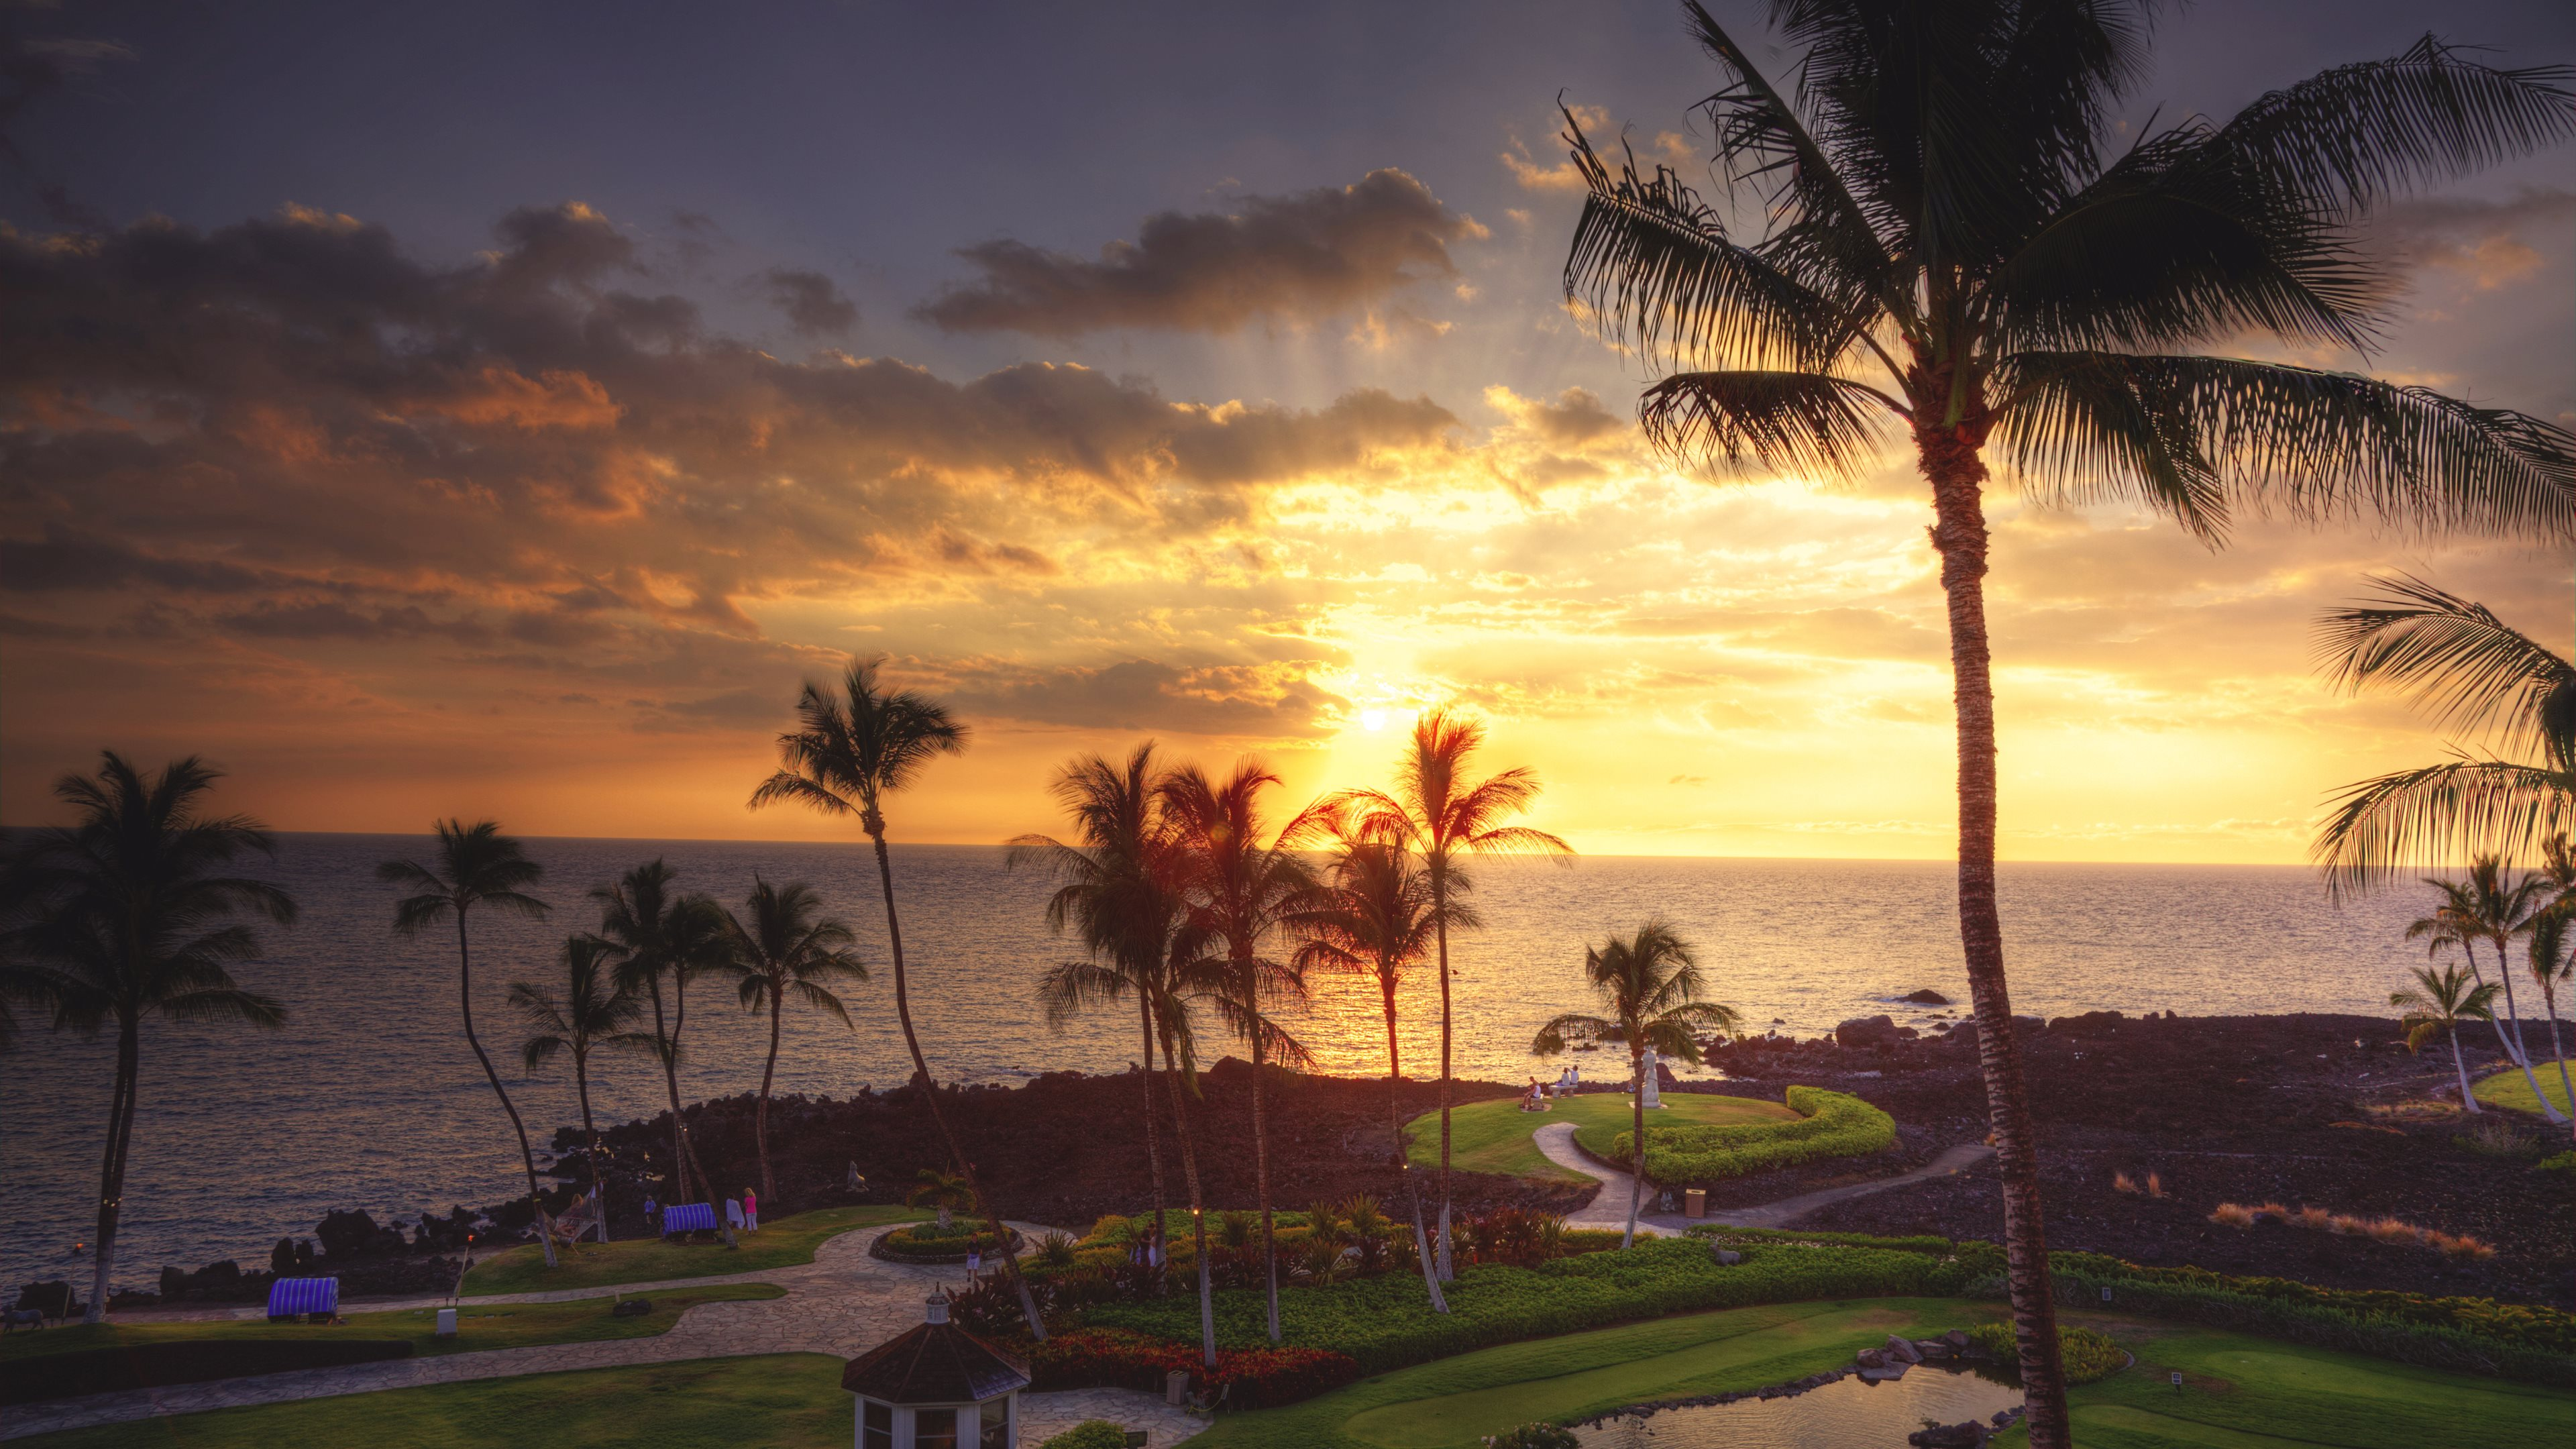 Hawaii Wallpapers Hd: Full HD Hawaii Wallpaper